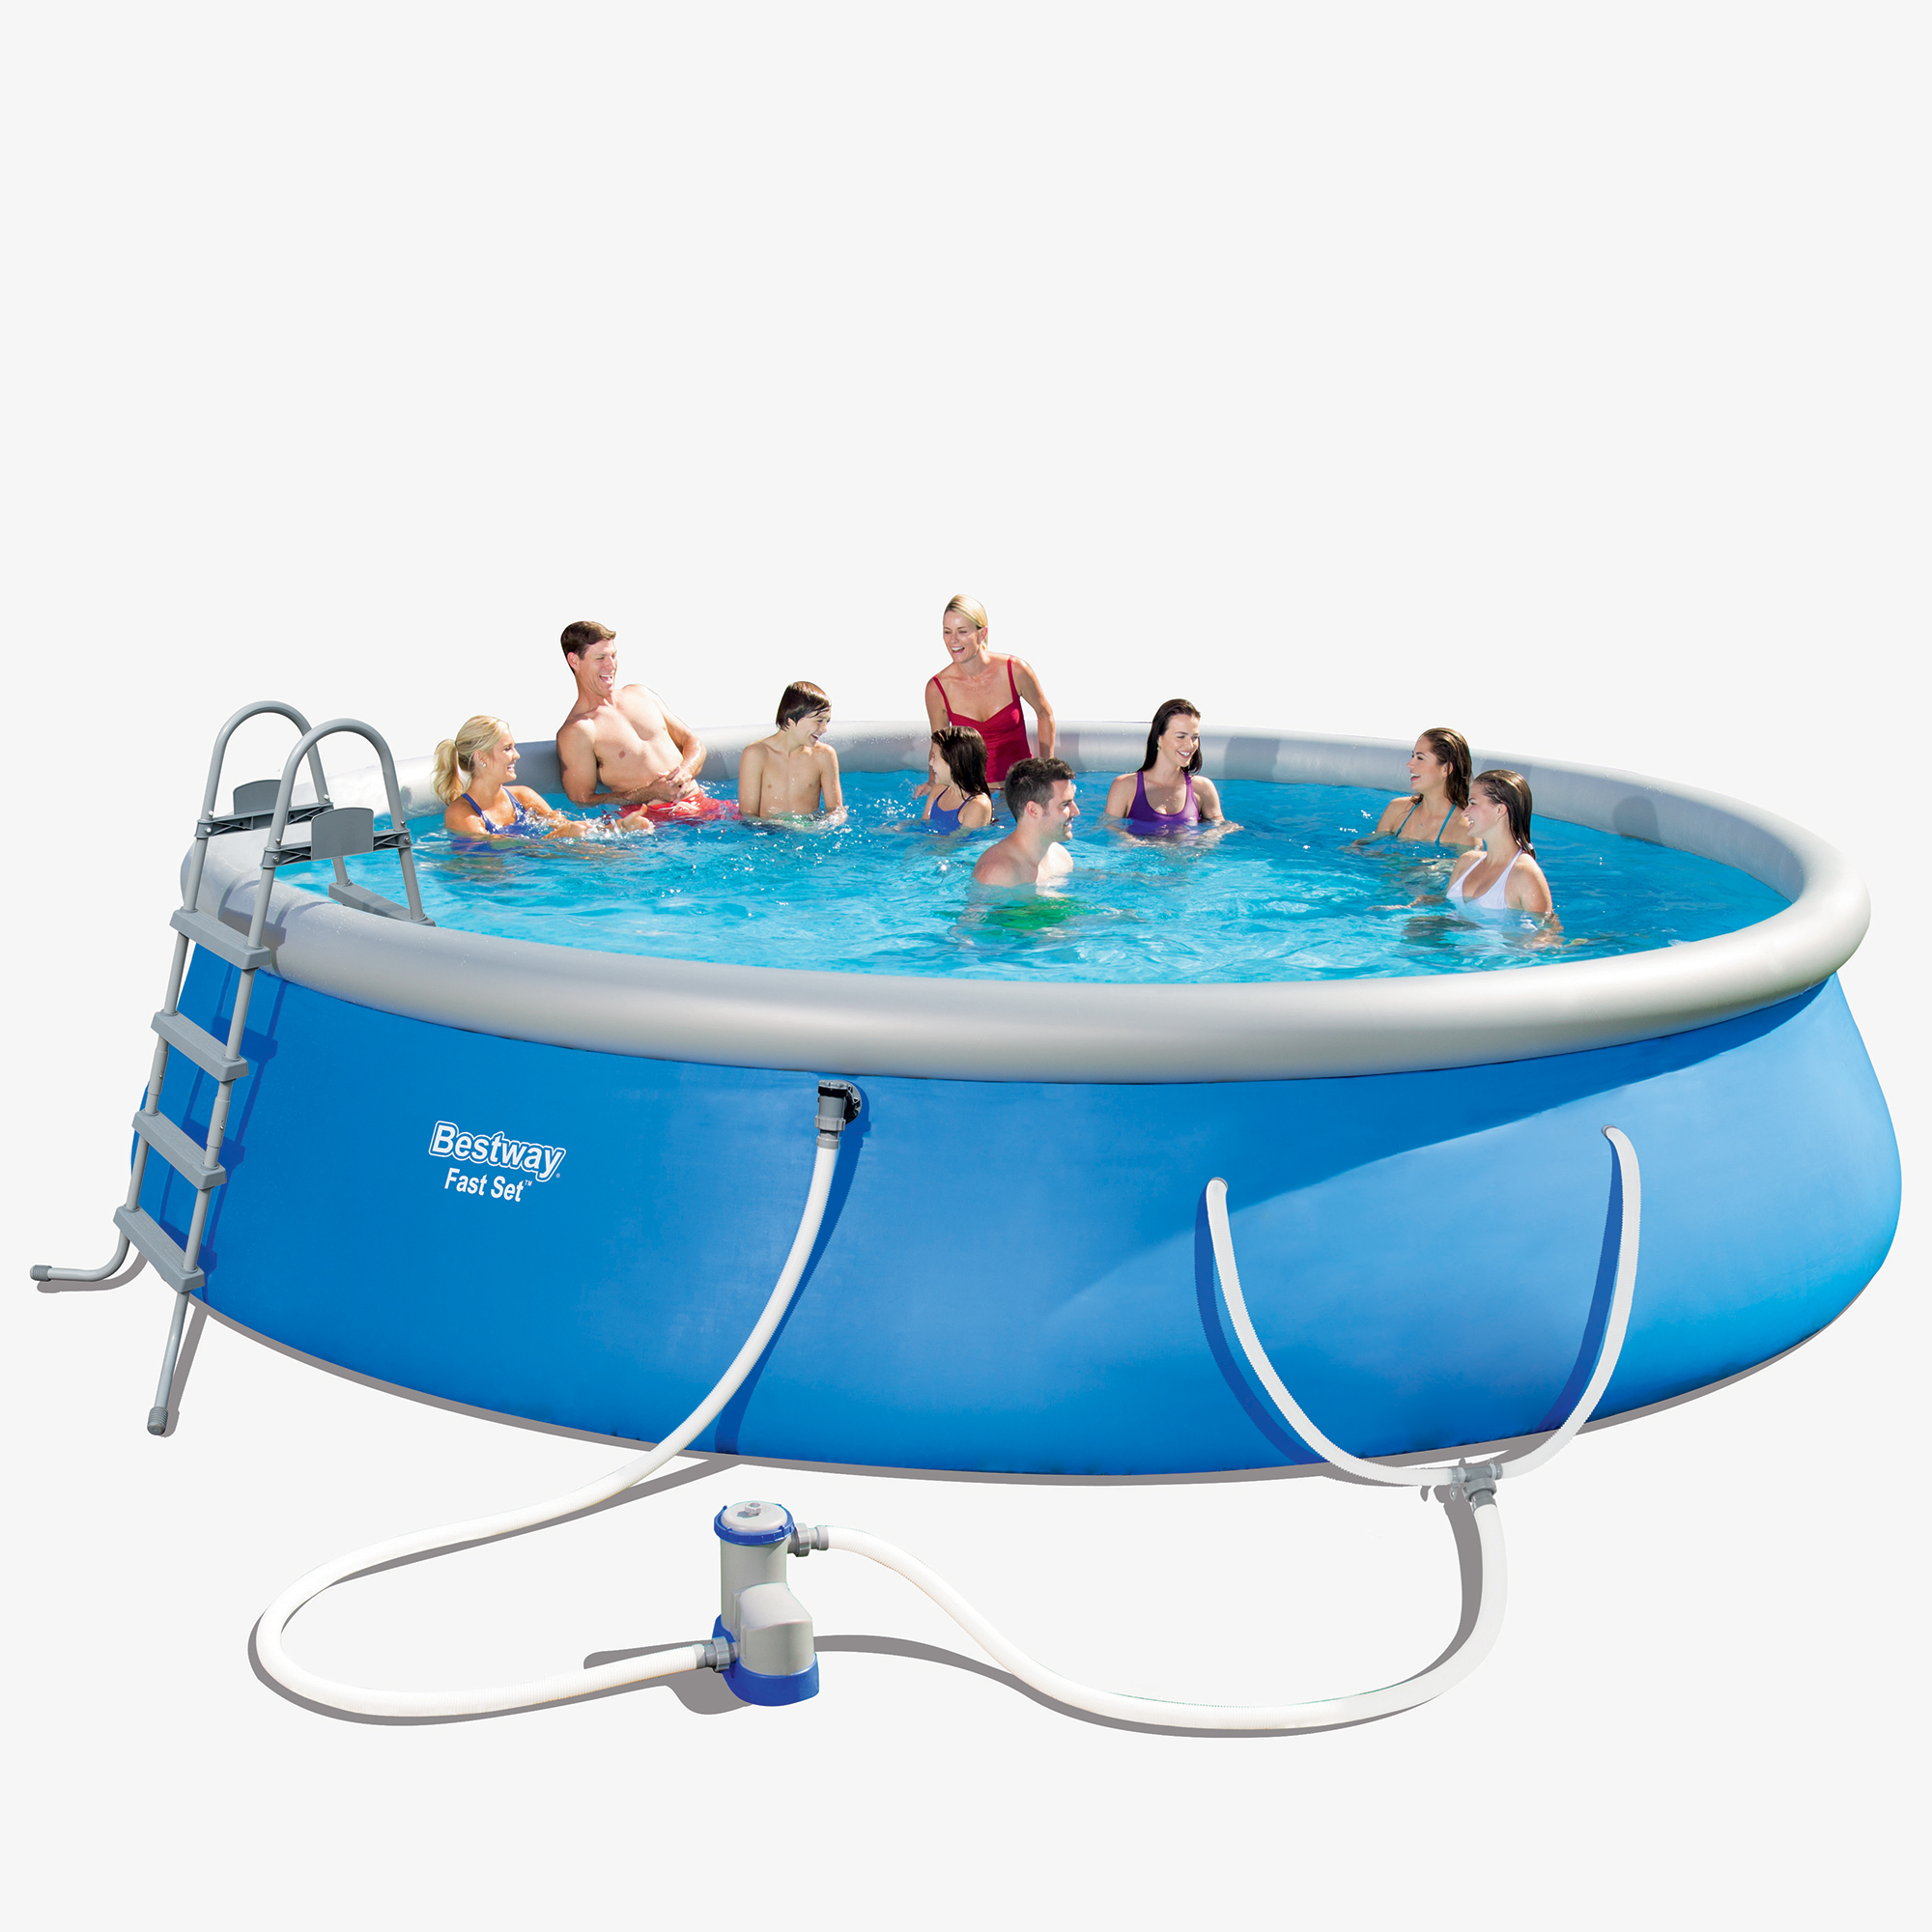 Bestway Fast Set 18 X 48 Quot Swimming Pool Set With Pump